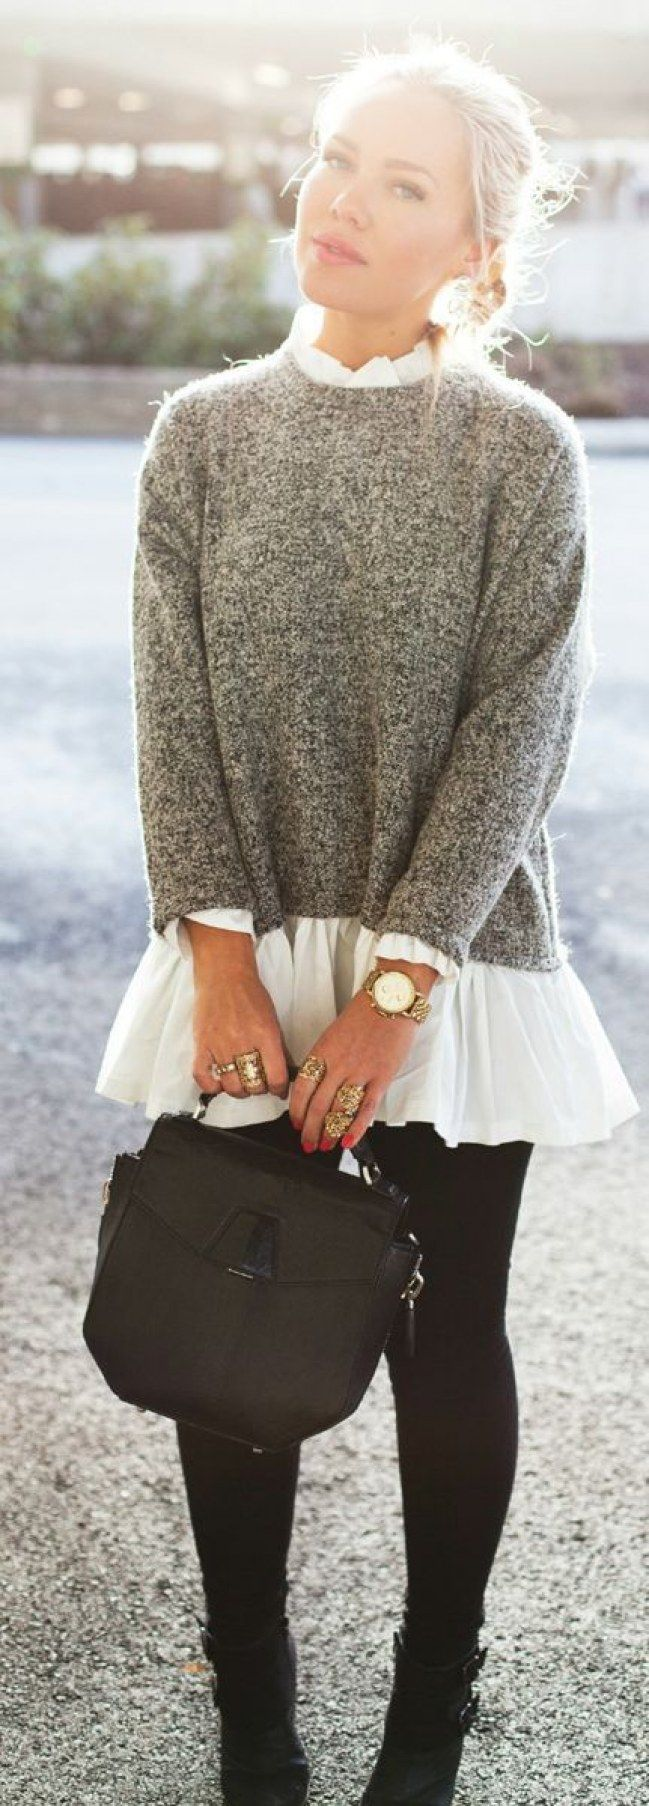 best 25+ pullover ideas on pinterest | sweater outfits, winter